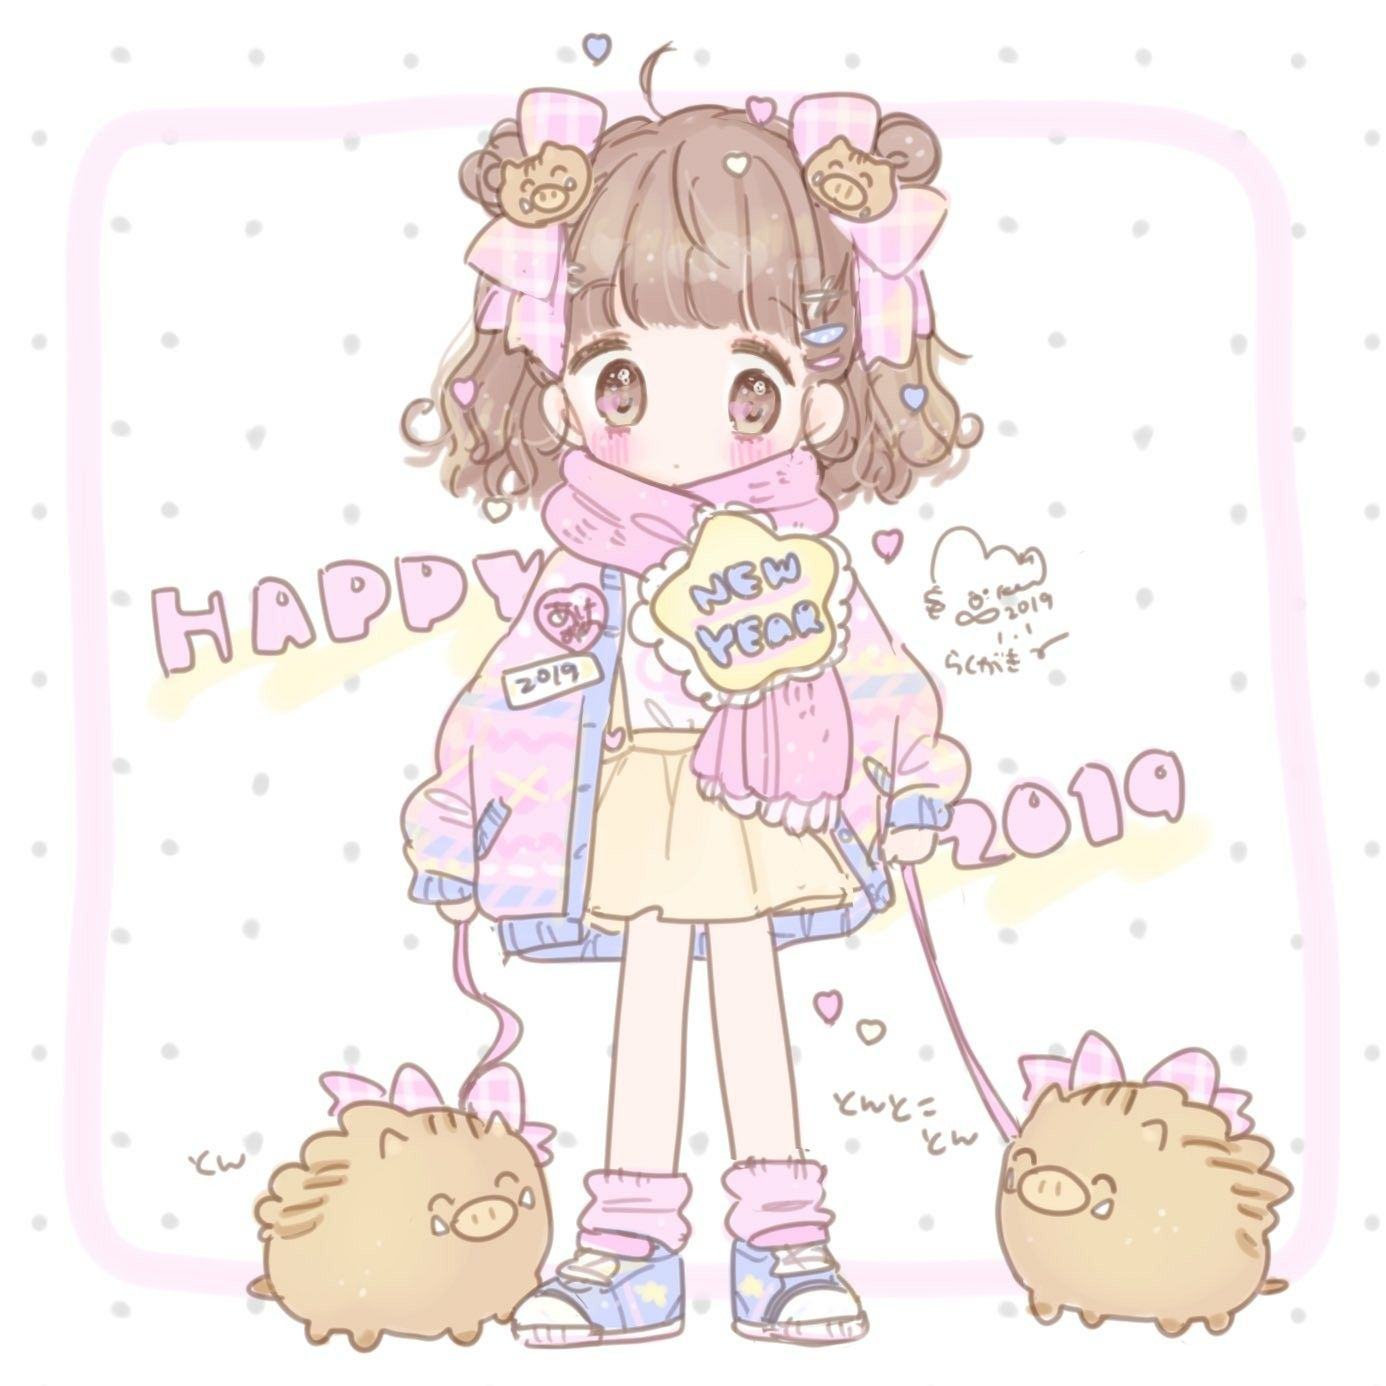 Image by follow me please 😁 on 少女心 Kawaii illustration